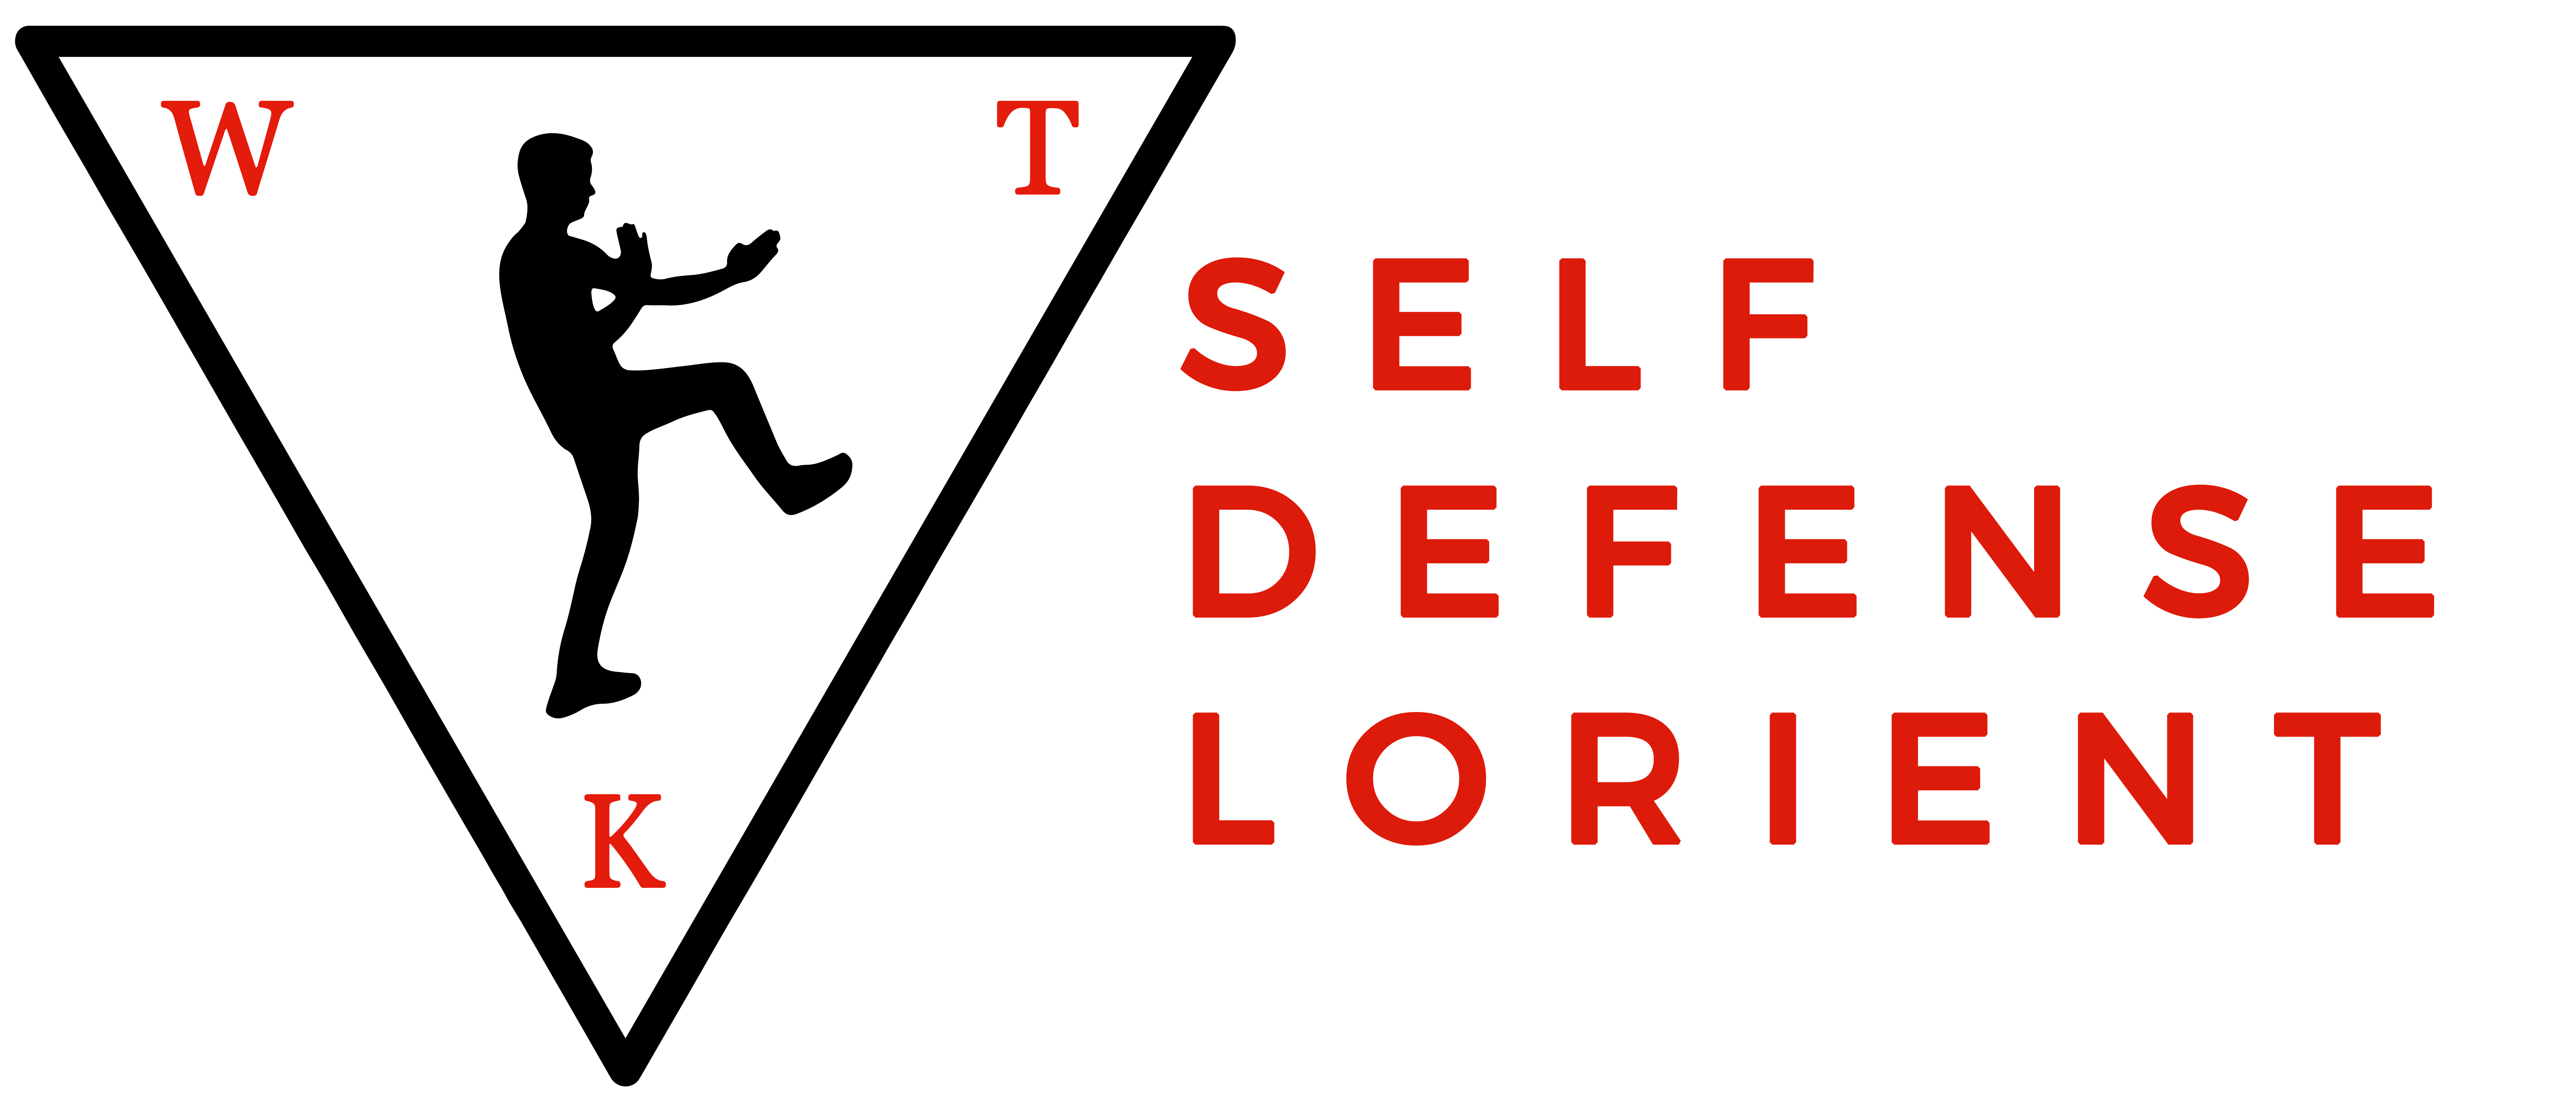 SELF DEFENSE WING TSUN LORIENT 56 image